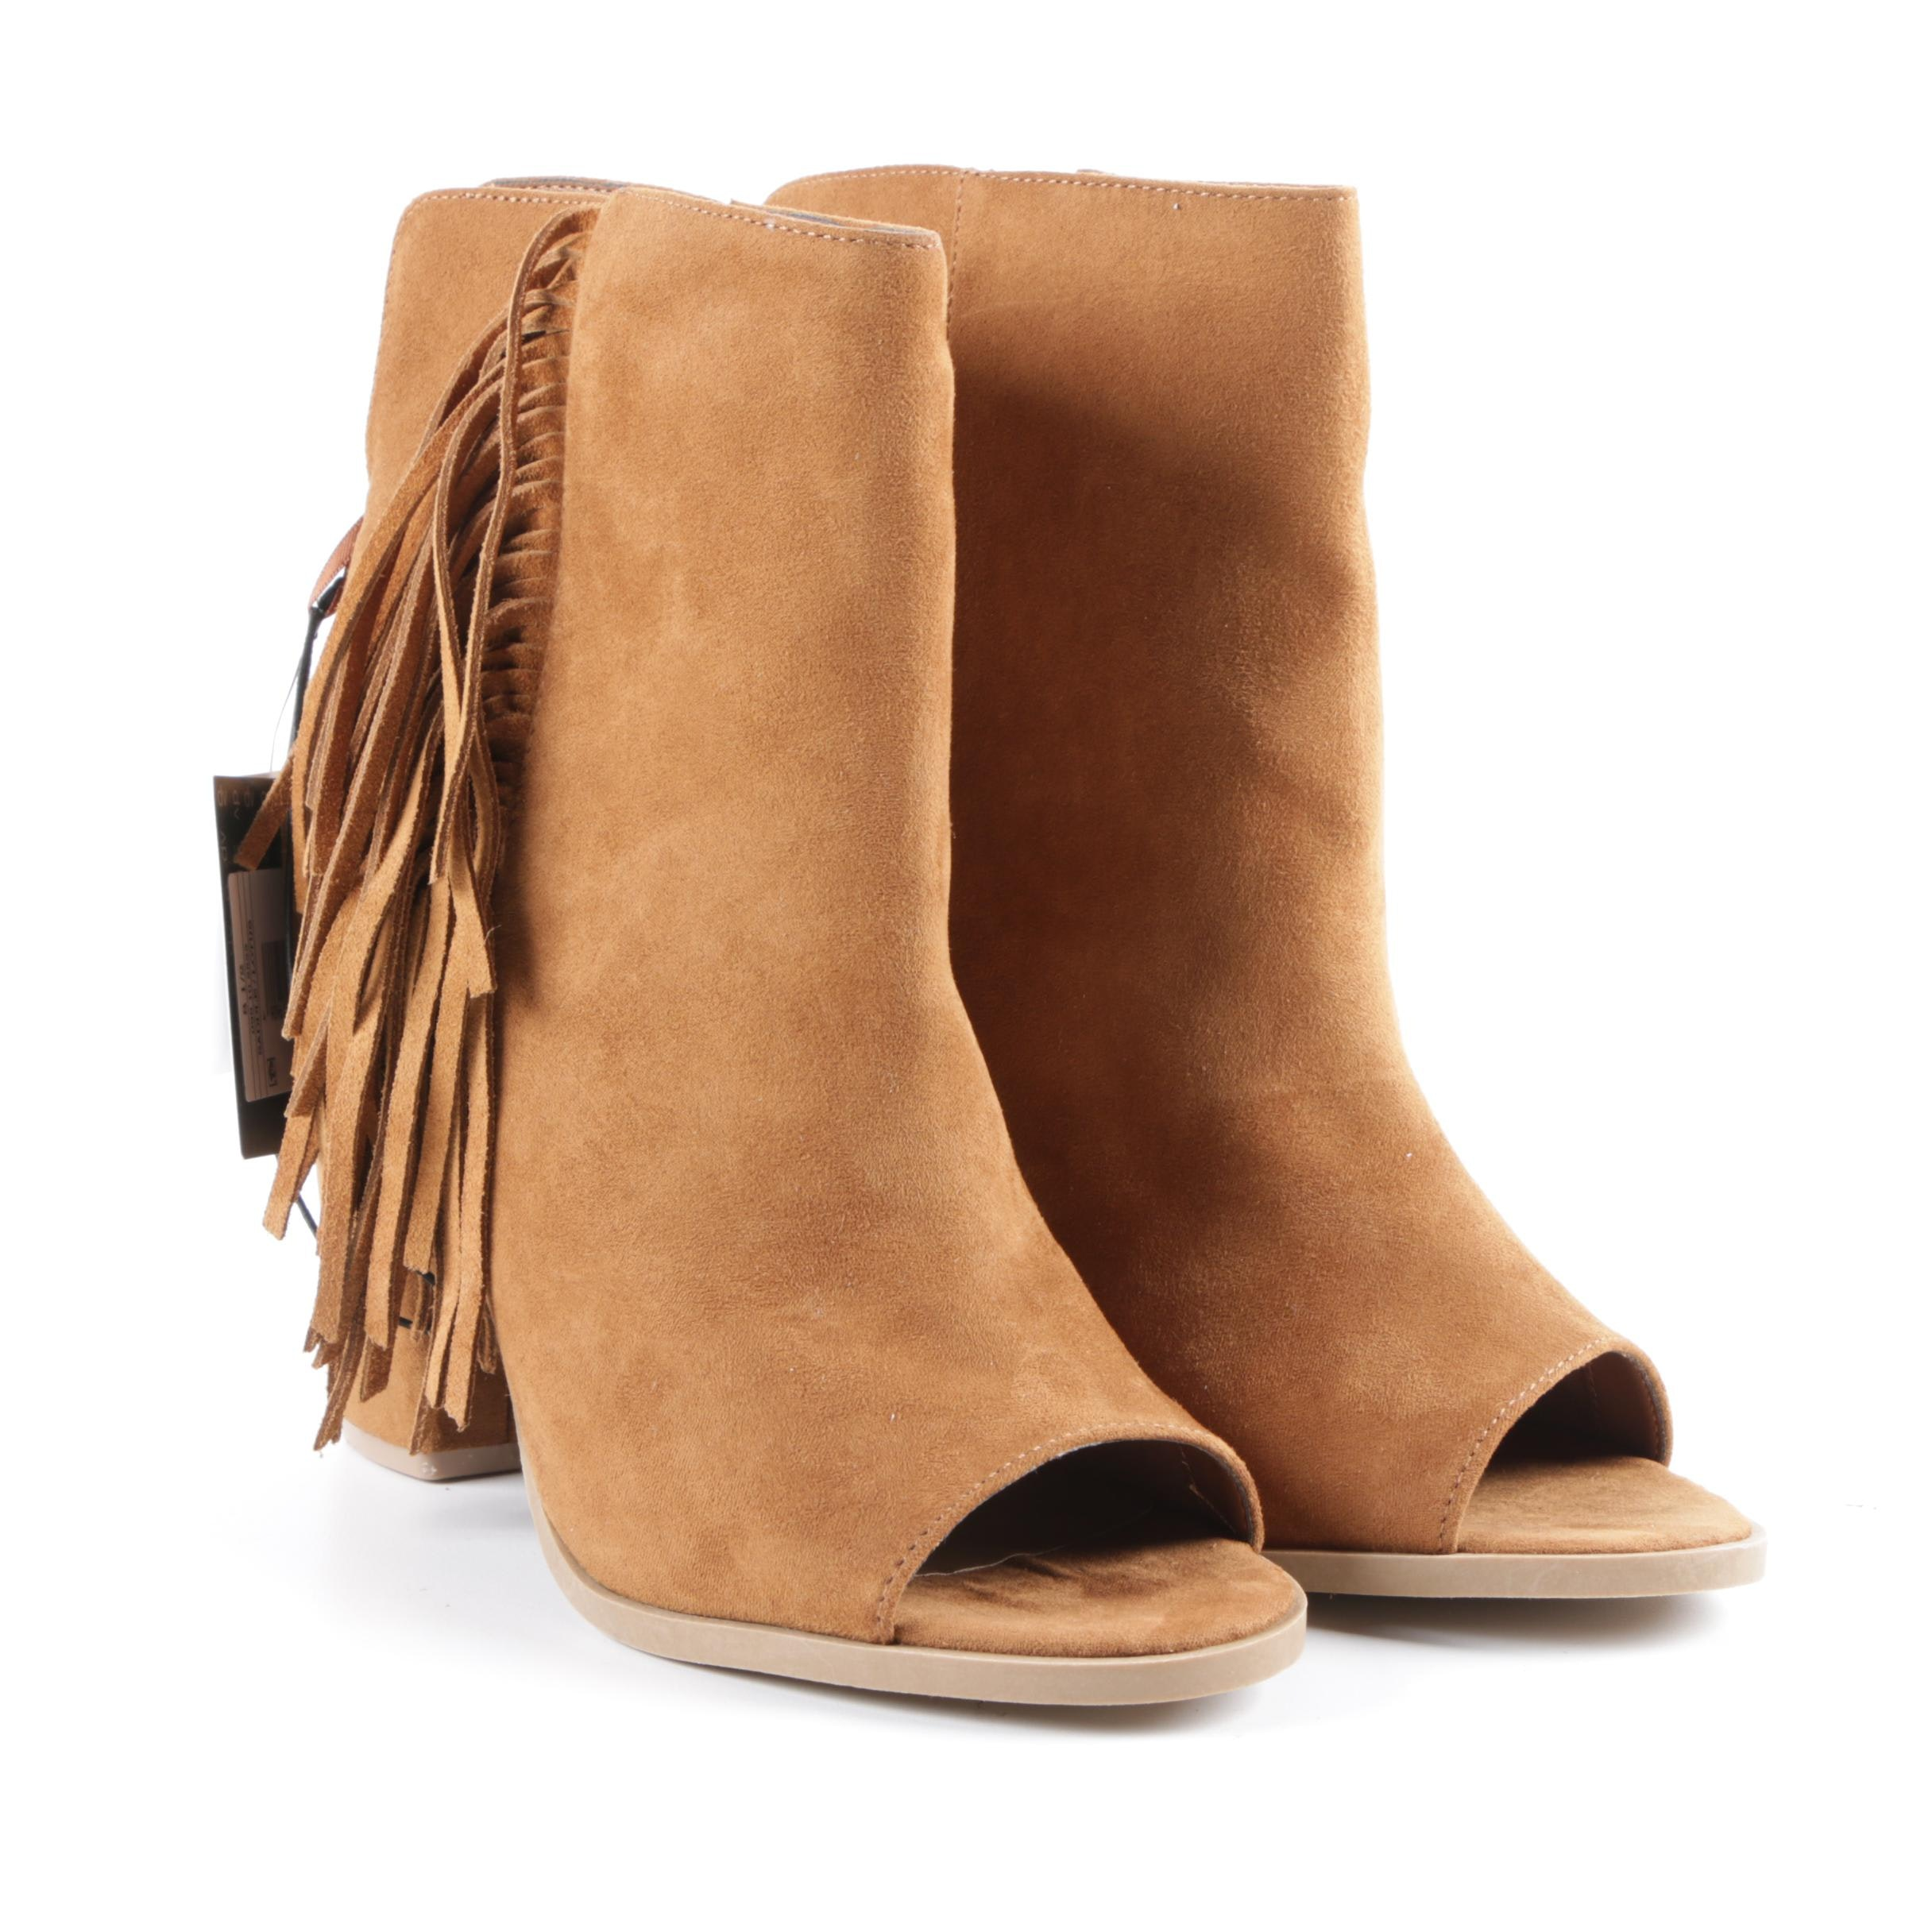 DV Designed by Dolce Vita Lotus Saddle Suede Peep-Toe Ankle Booties with Fringe